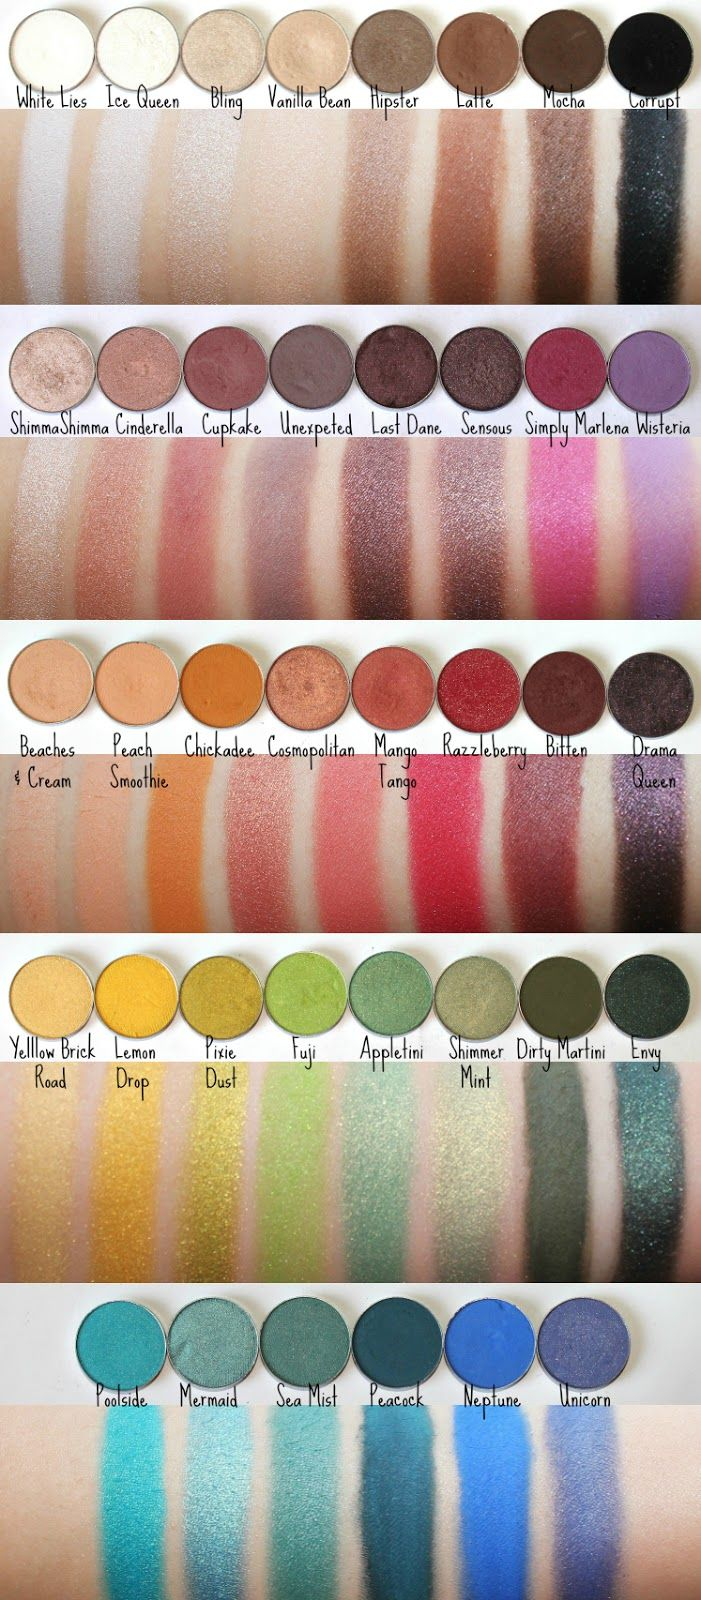 Makeup Geek shadow swatches! Some say that these shadows are better than MAC and for a fraction of of the cost! Love it!